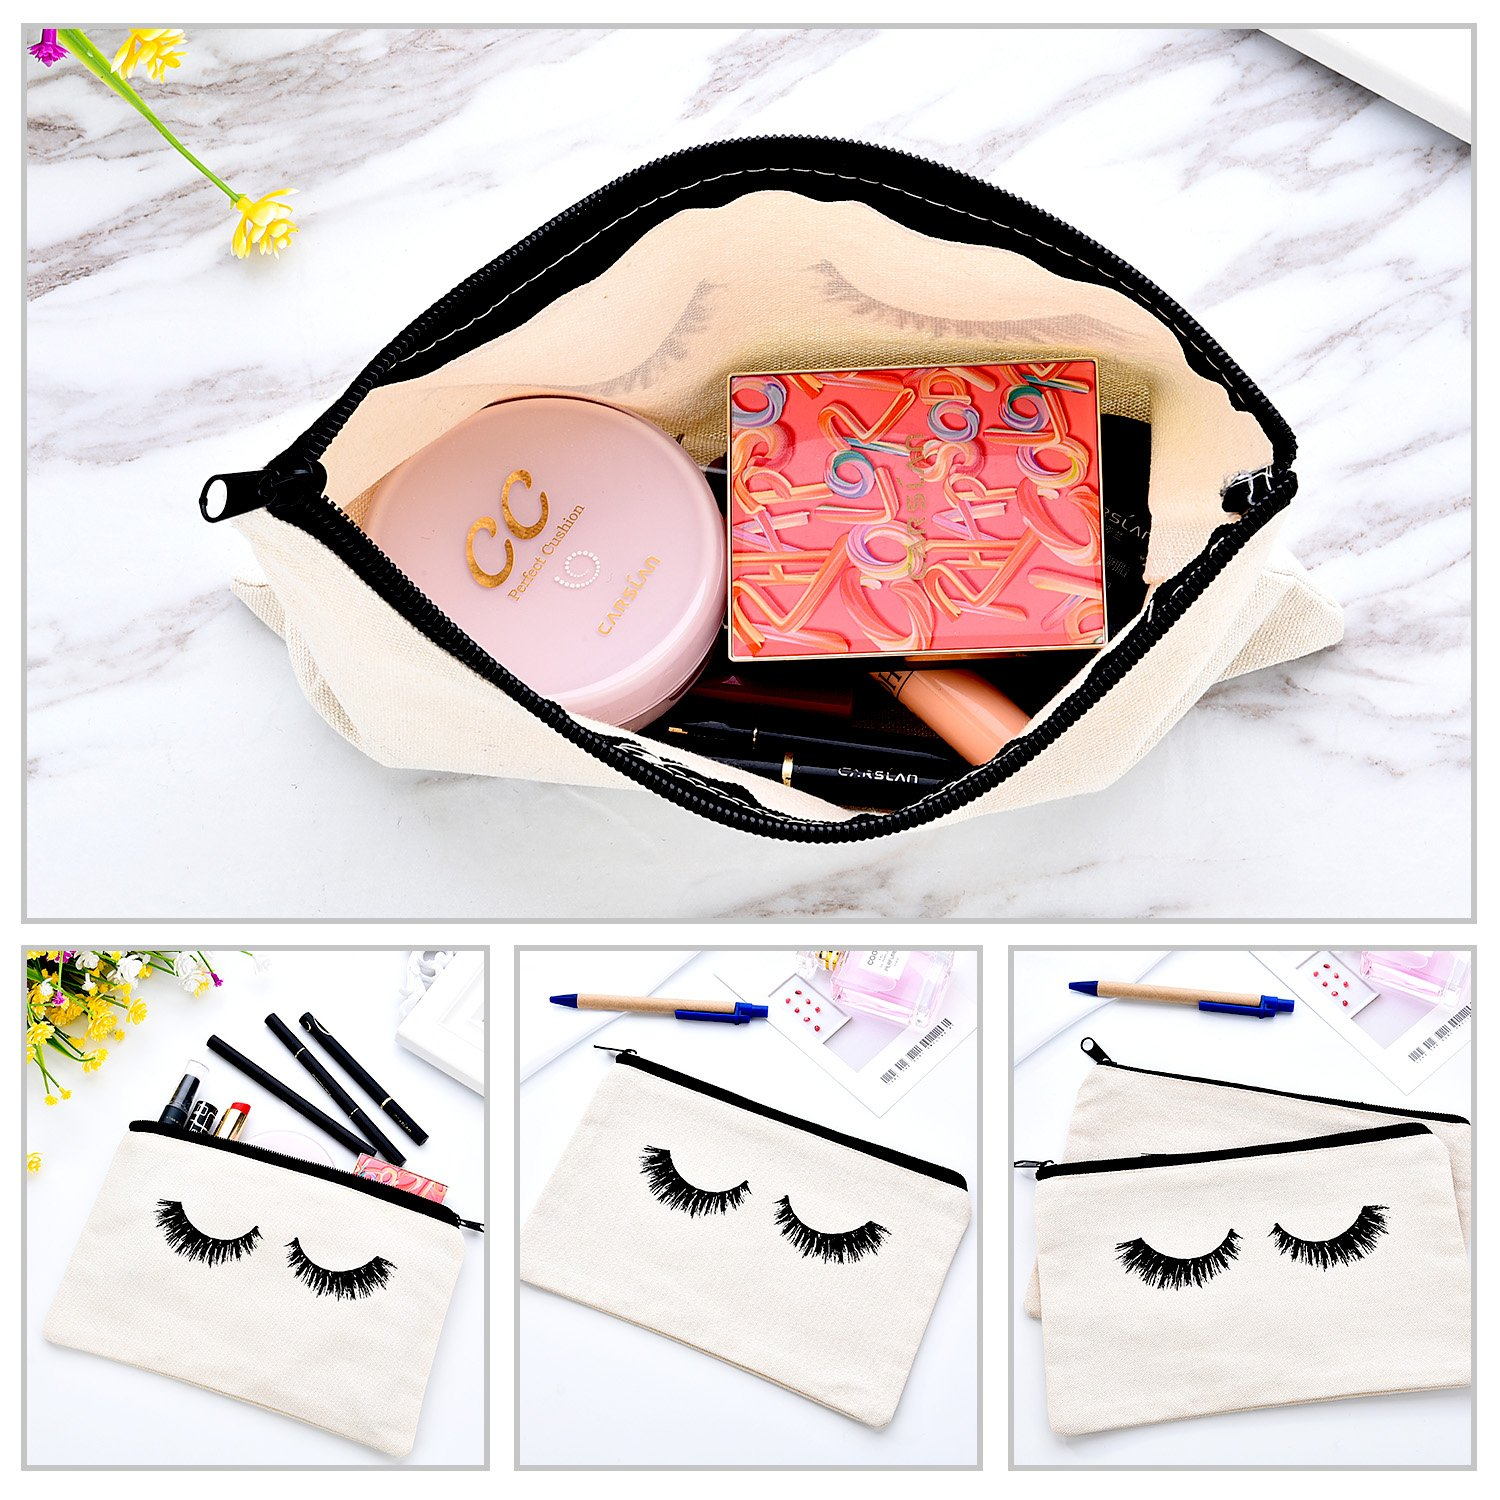 10 Pieces Eyelash Makeup Bags, Travel Cosmetic Pouches with Zipper for Women - White